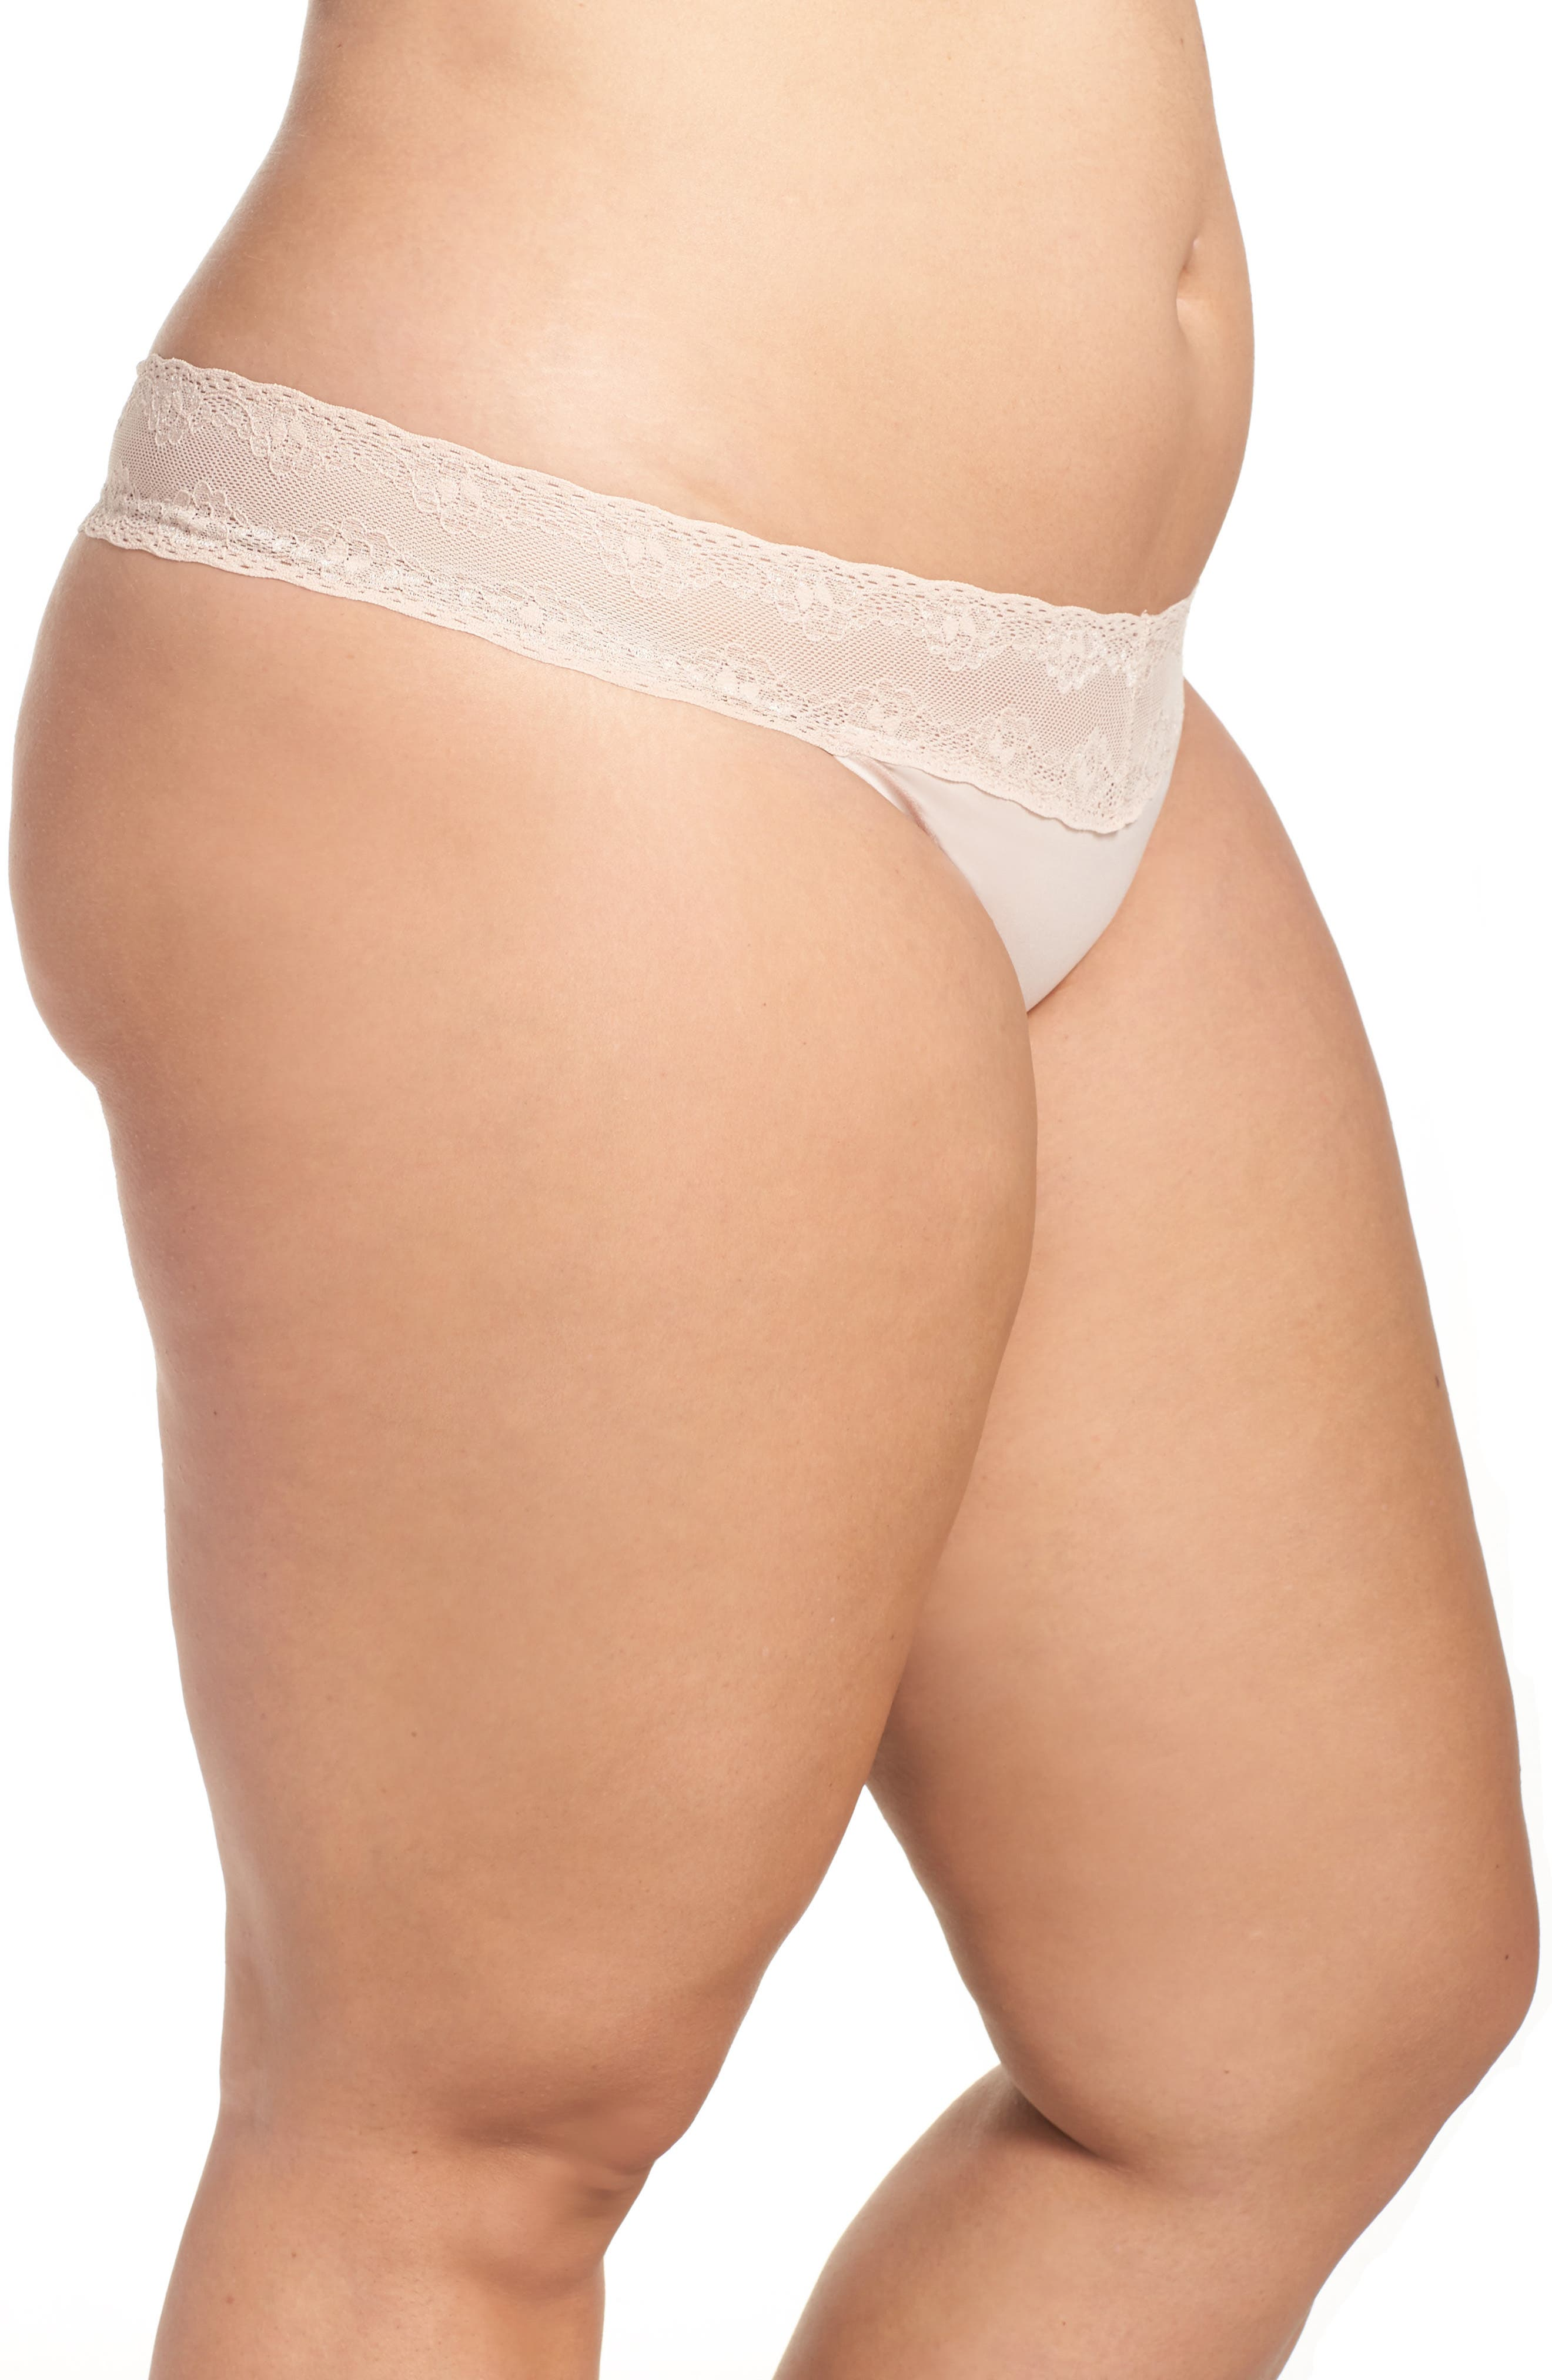 Bliss Perfection Thong,                             Alternate thumbnail 23, color,